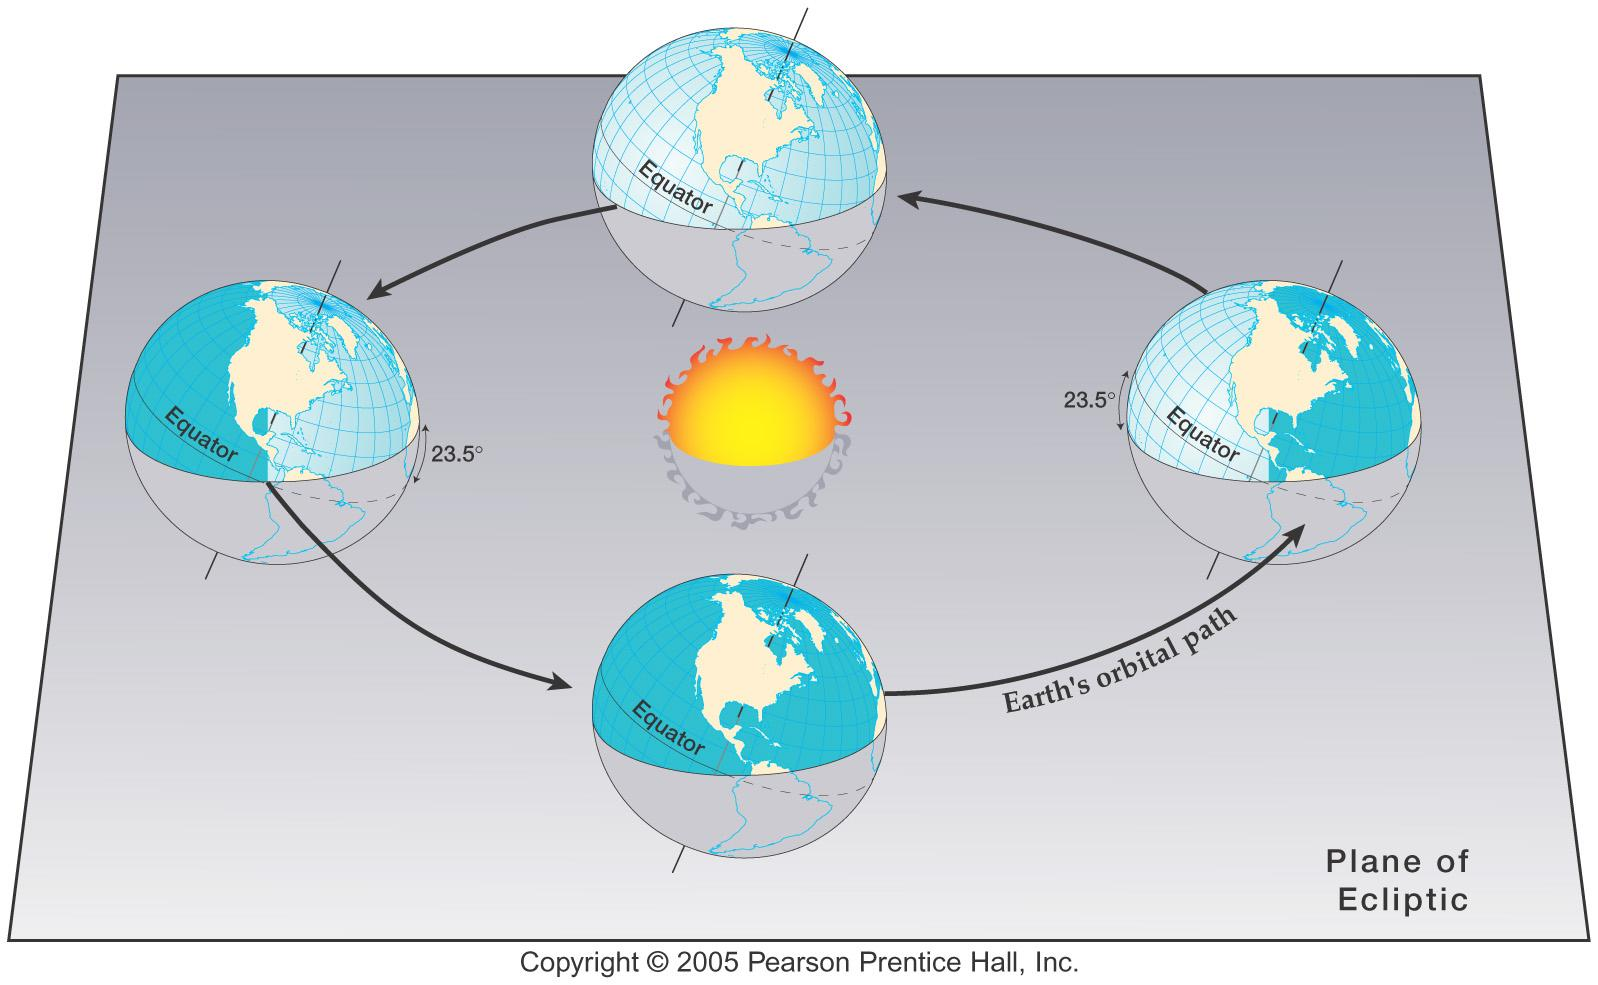 http://web.gccaz.edu/~lnewman/gph111/topic_units/earth_sun/01_20.jpg